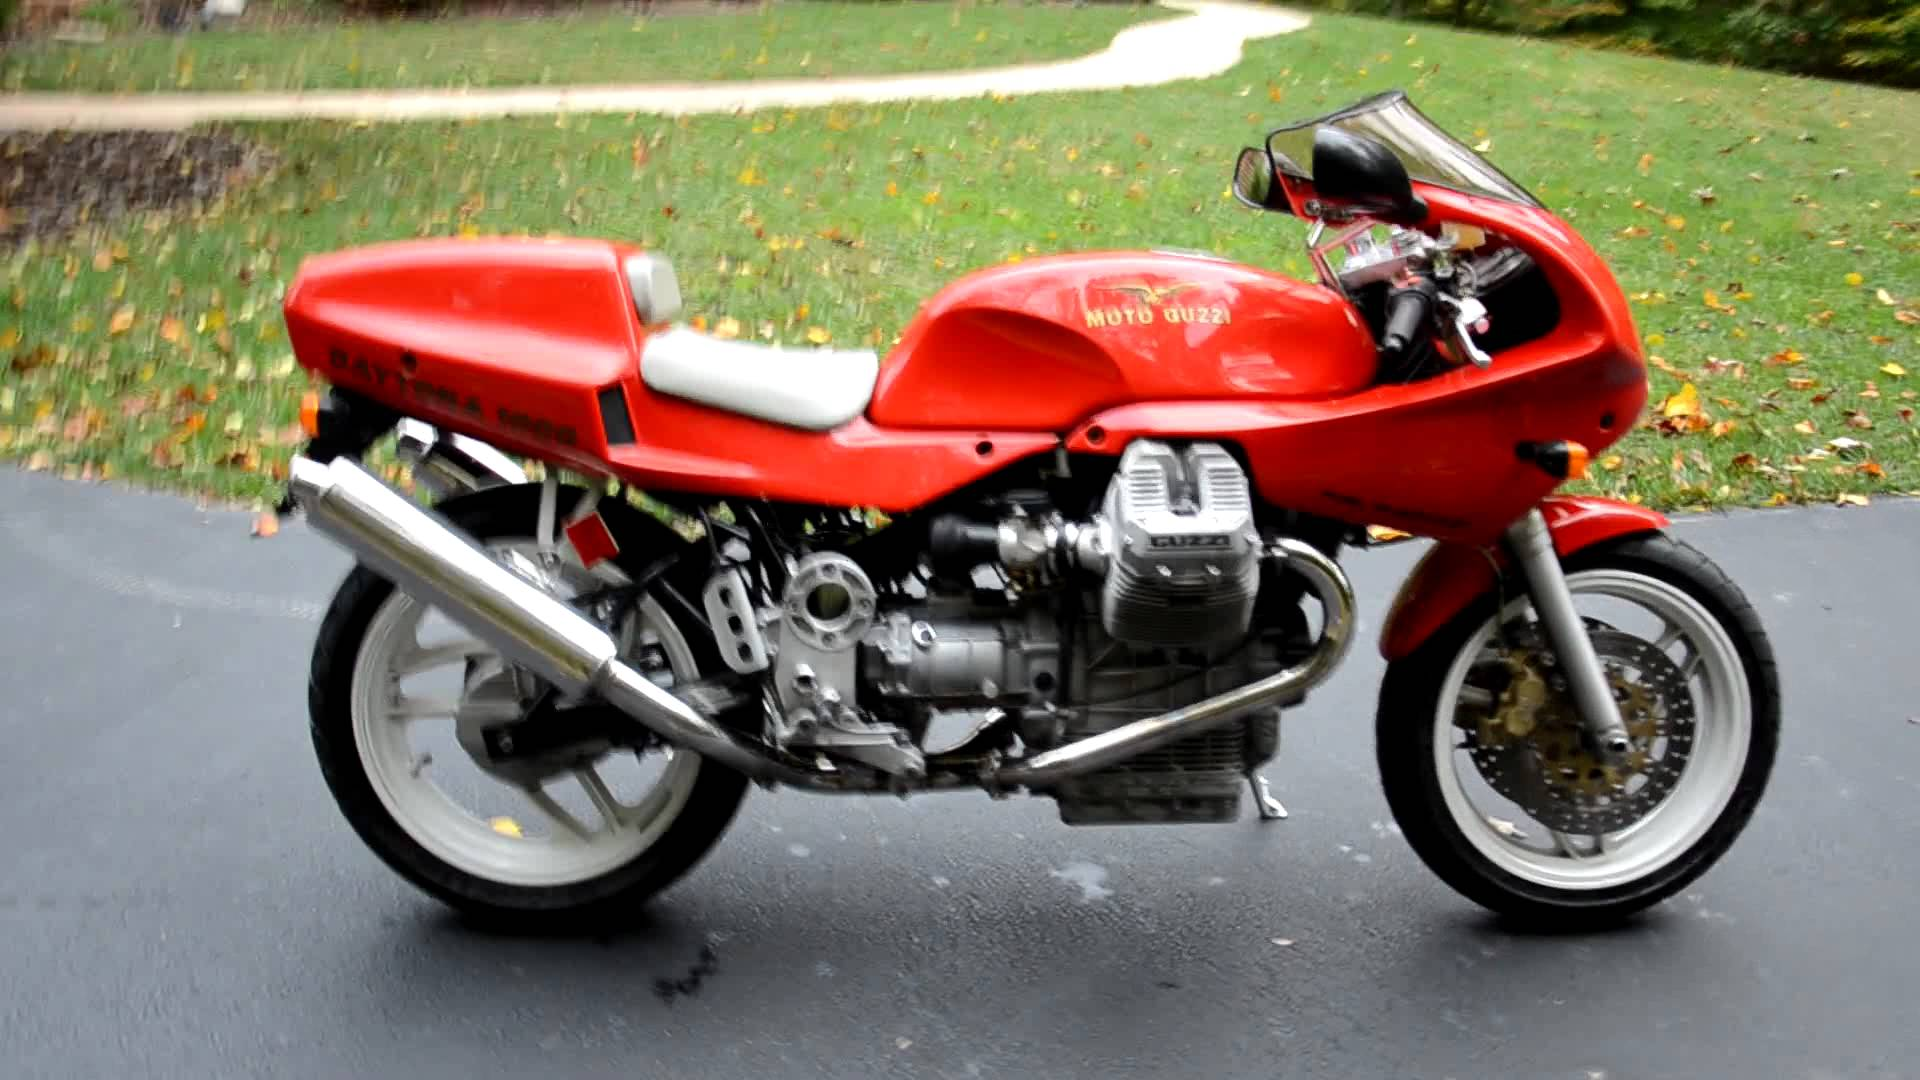 Moto Guzzi 1000 Daytona Injection images #108590